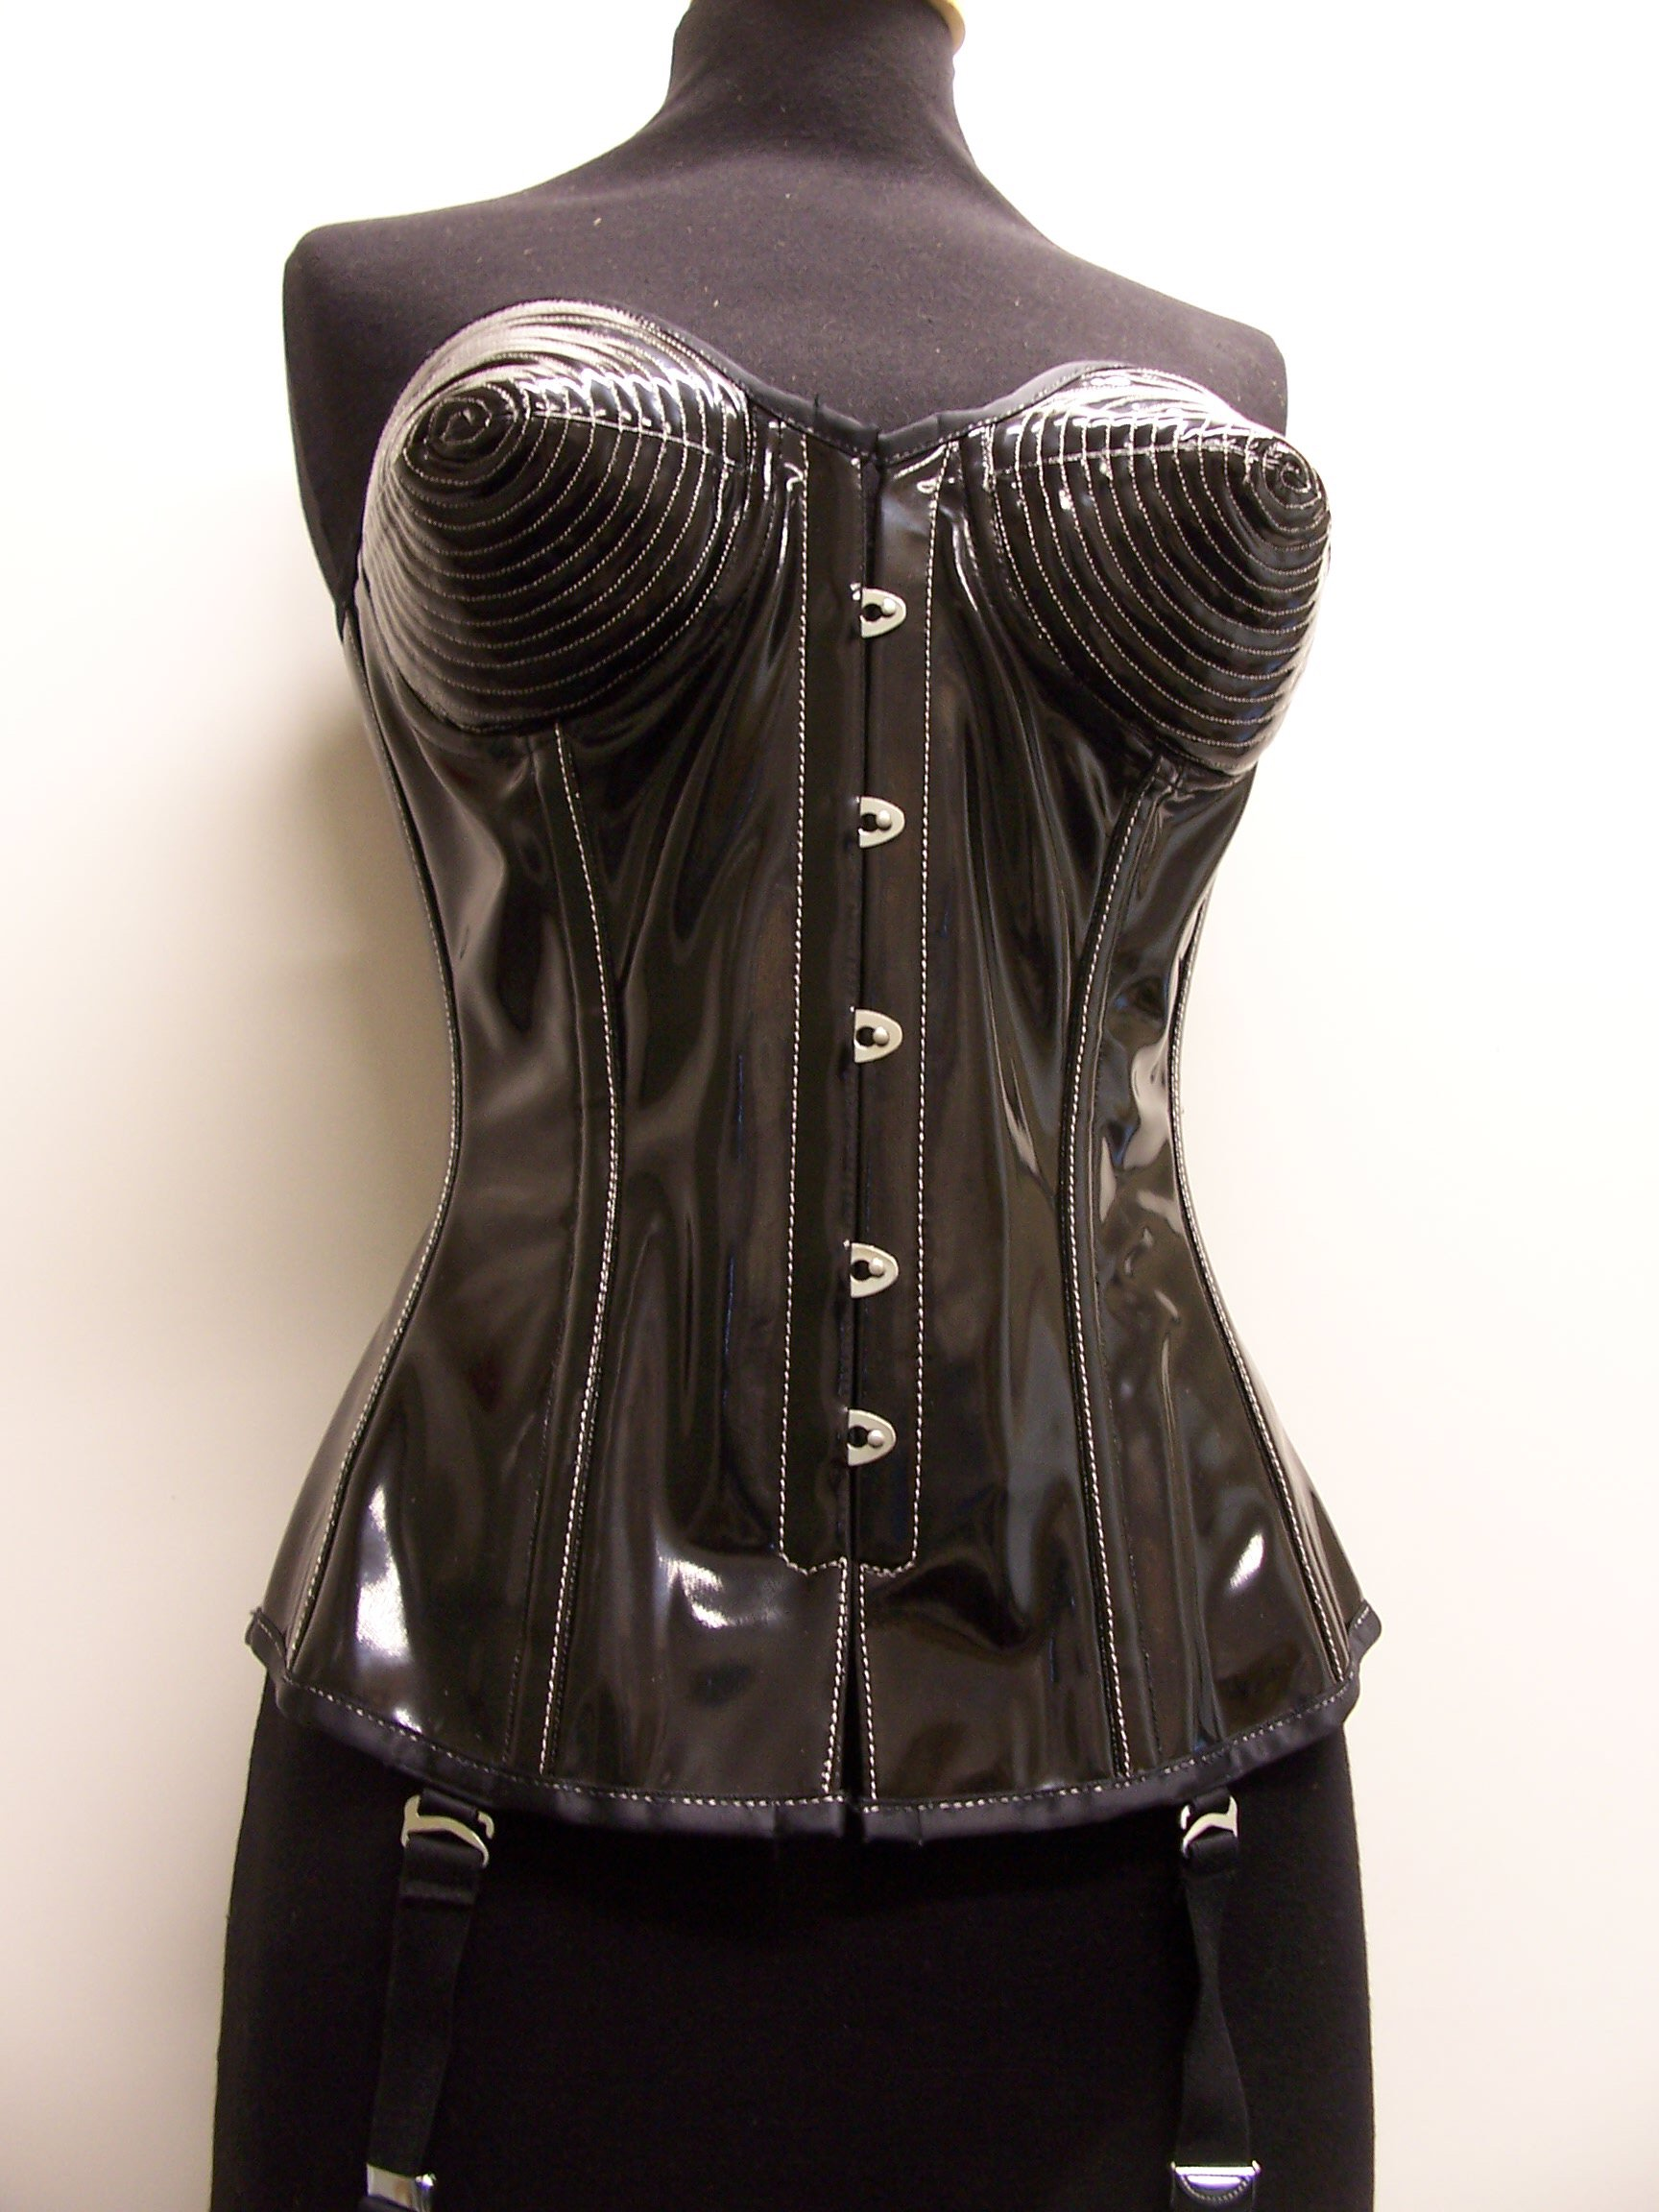 PVC corset by Vollers